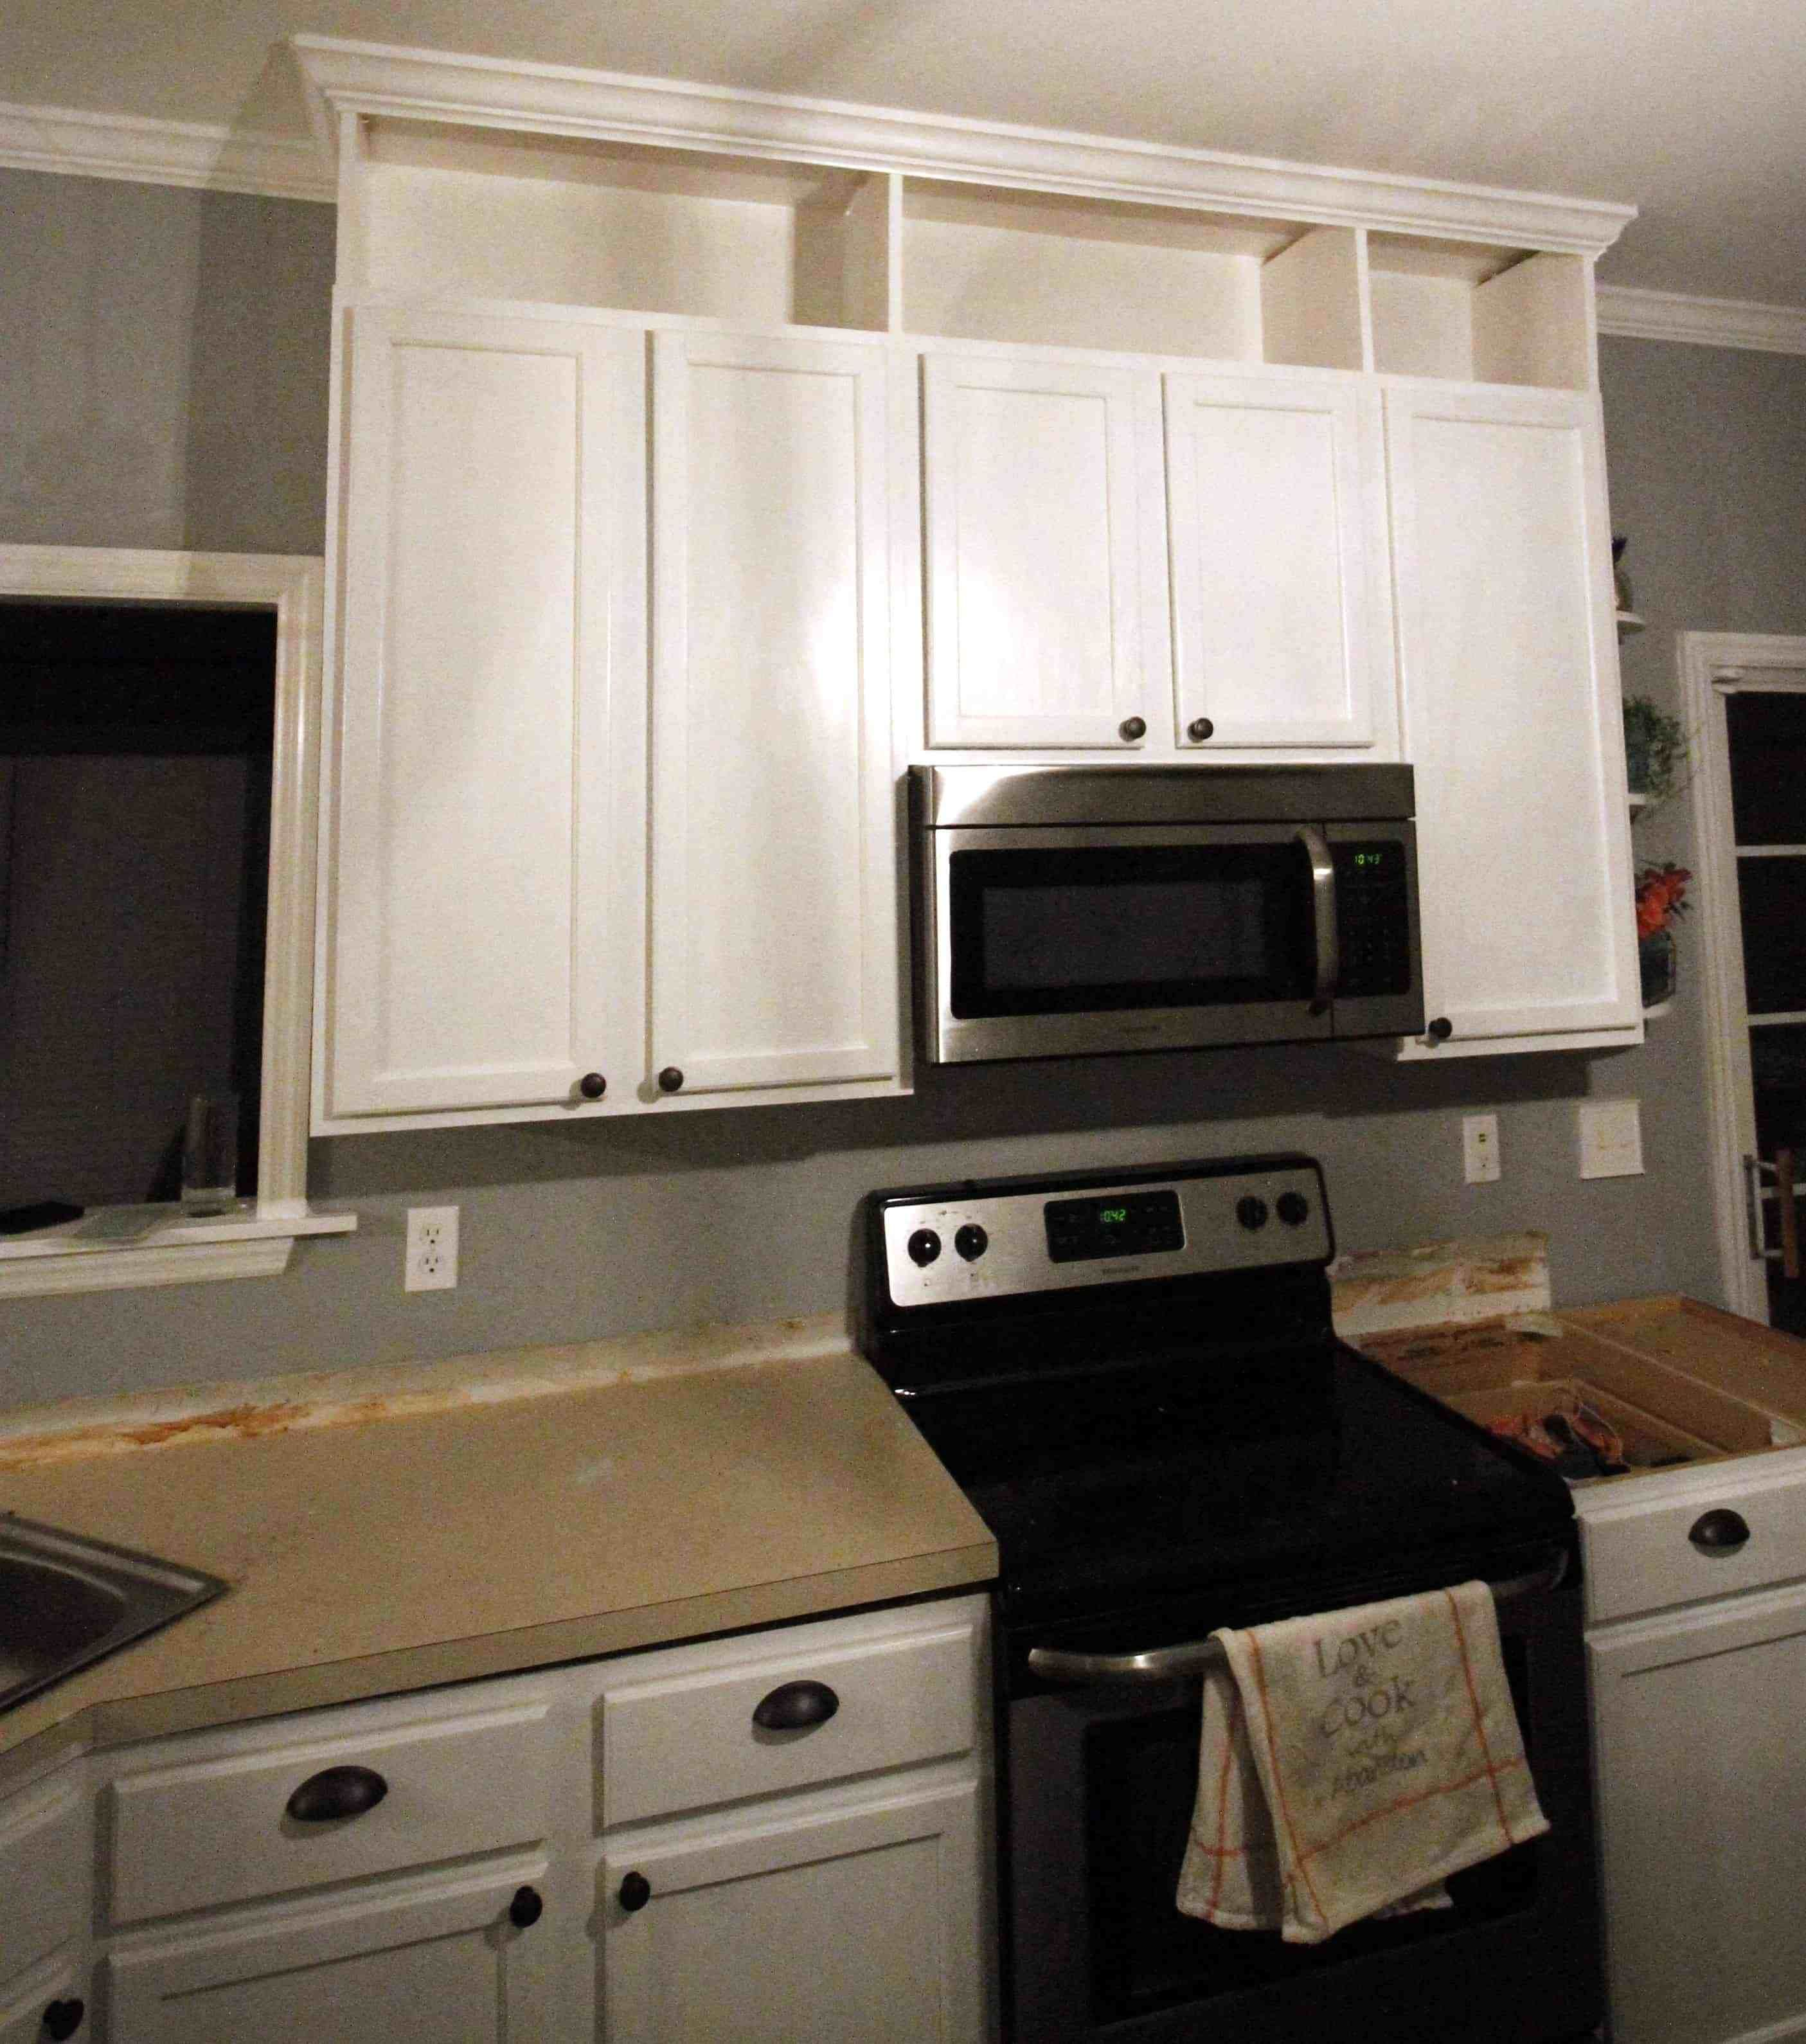 How To Extend Kitchen Cabinets To The Ceiling Diy Kitchen Renovation Kitchen Cabinets To Ceiling New Kitchen Cabinets